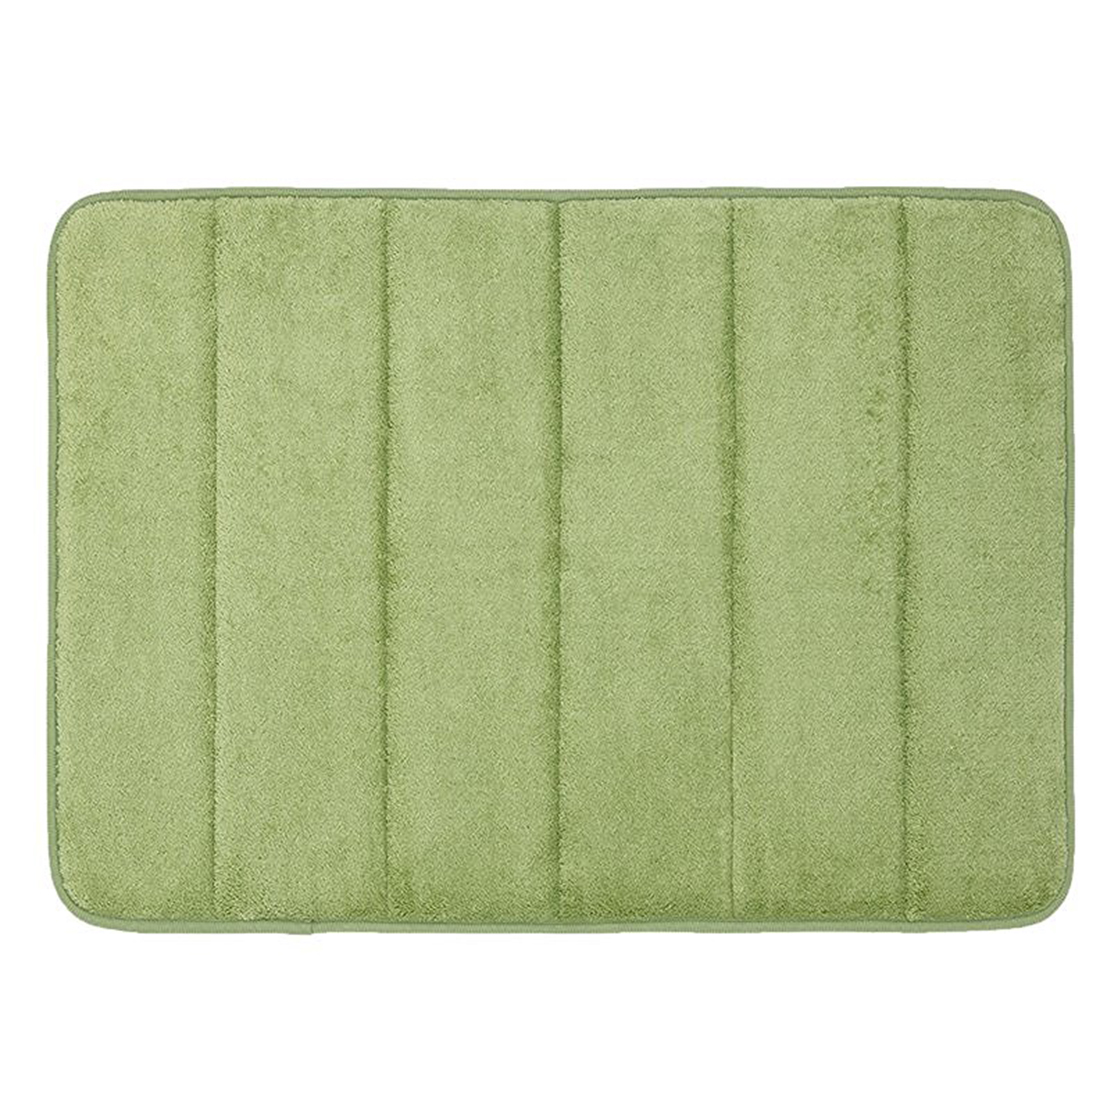 Anti Slip Memory Foam Bath Rug Comfort Entrance Mat Doormat Carpet In From Home Garden On Aliexpress Alibaba Group